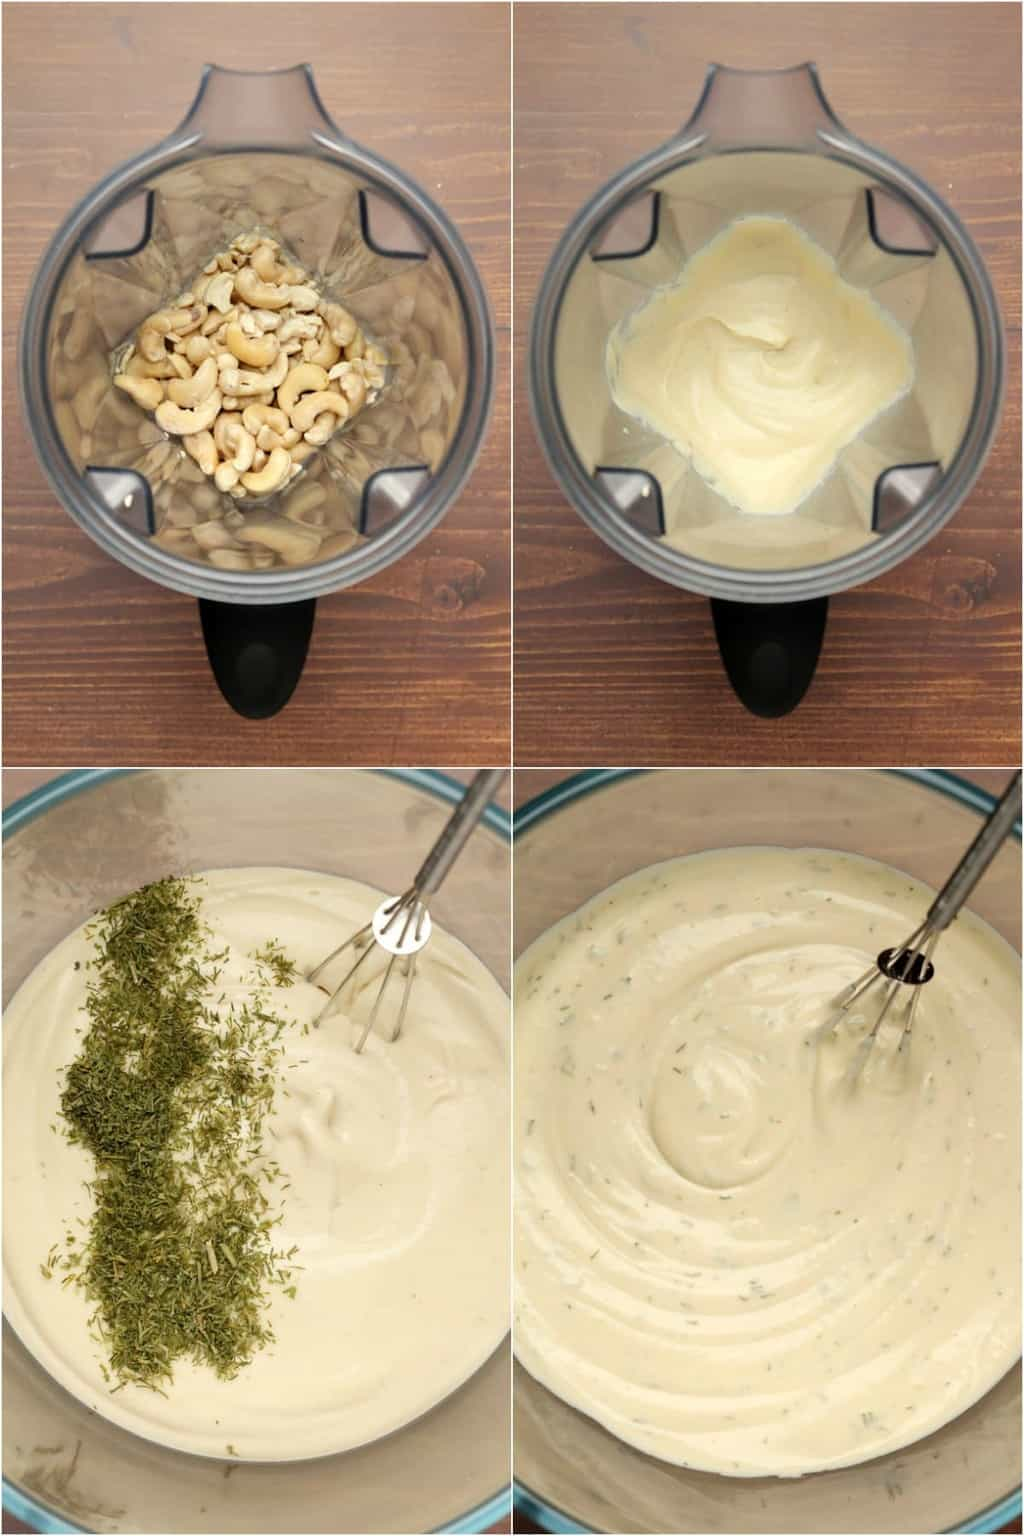 Step by step process photo collage of making vegan cream cheese.